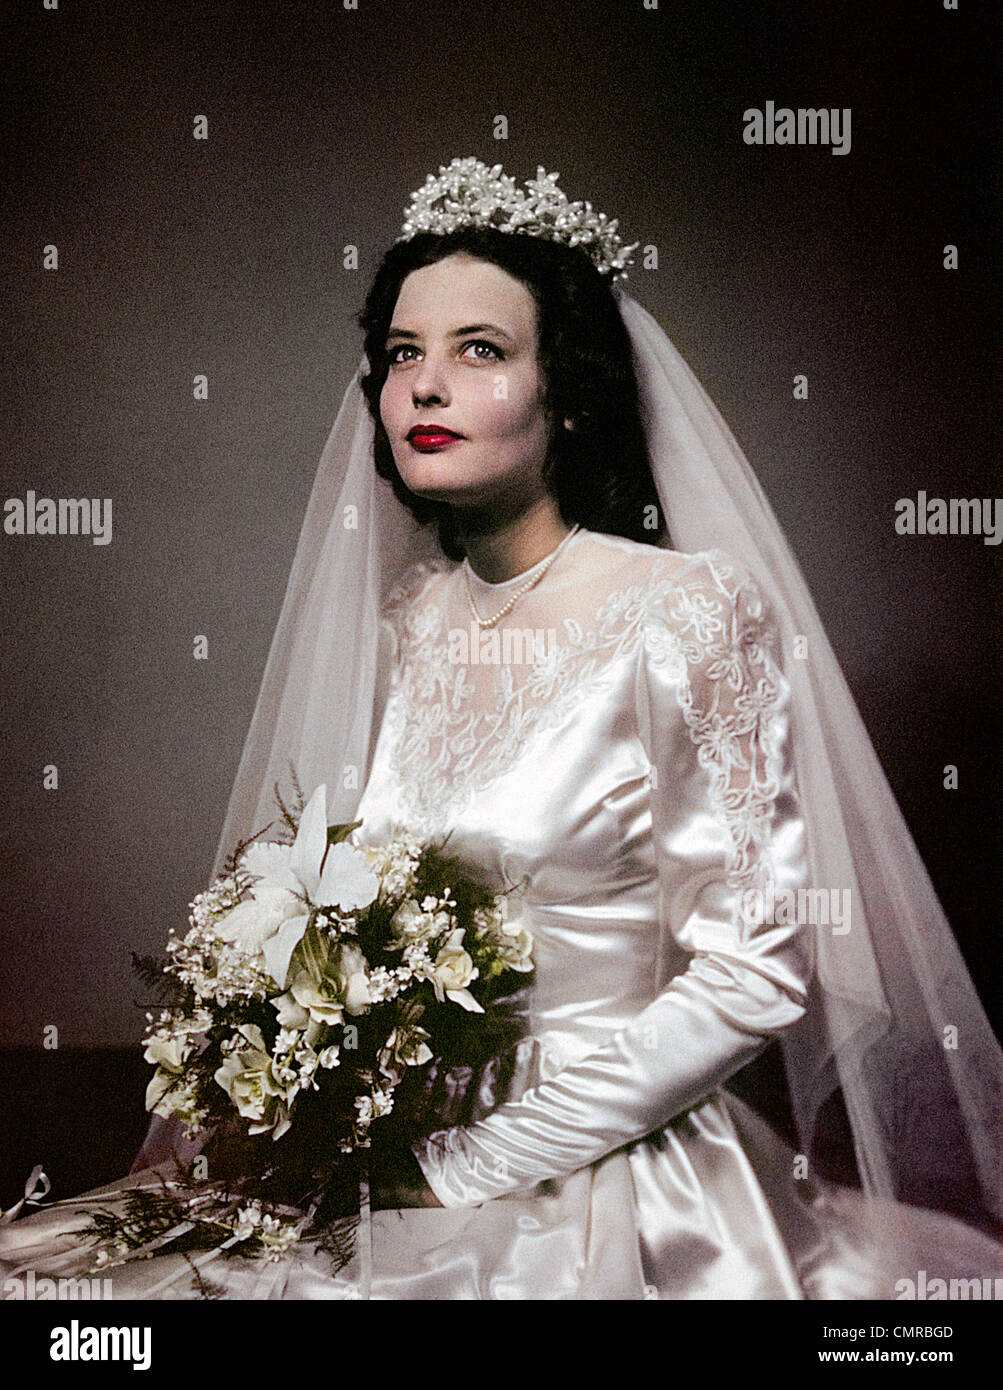 1940s 1950s PORTRAIT BRUNETTE BRIDE IN BRIDAL GOWN WITH FLOWER BOUQUET - Stock Image